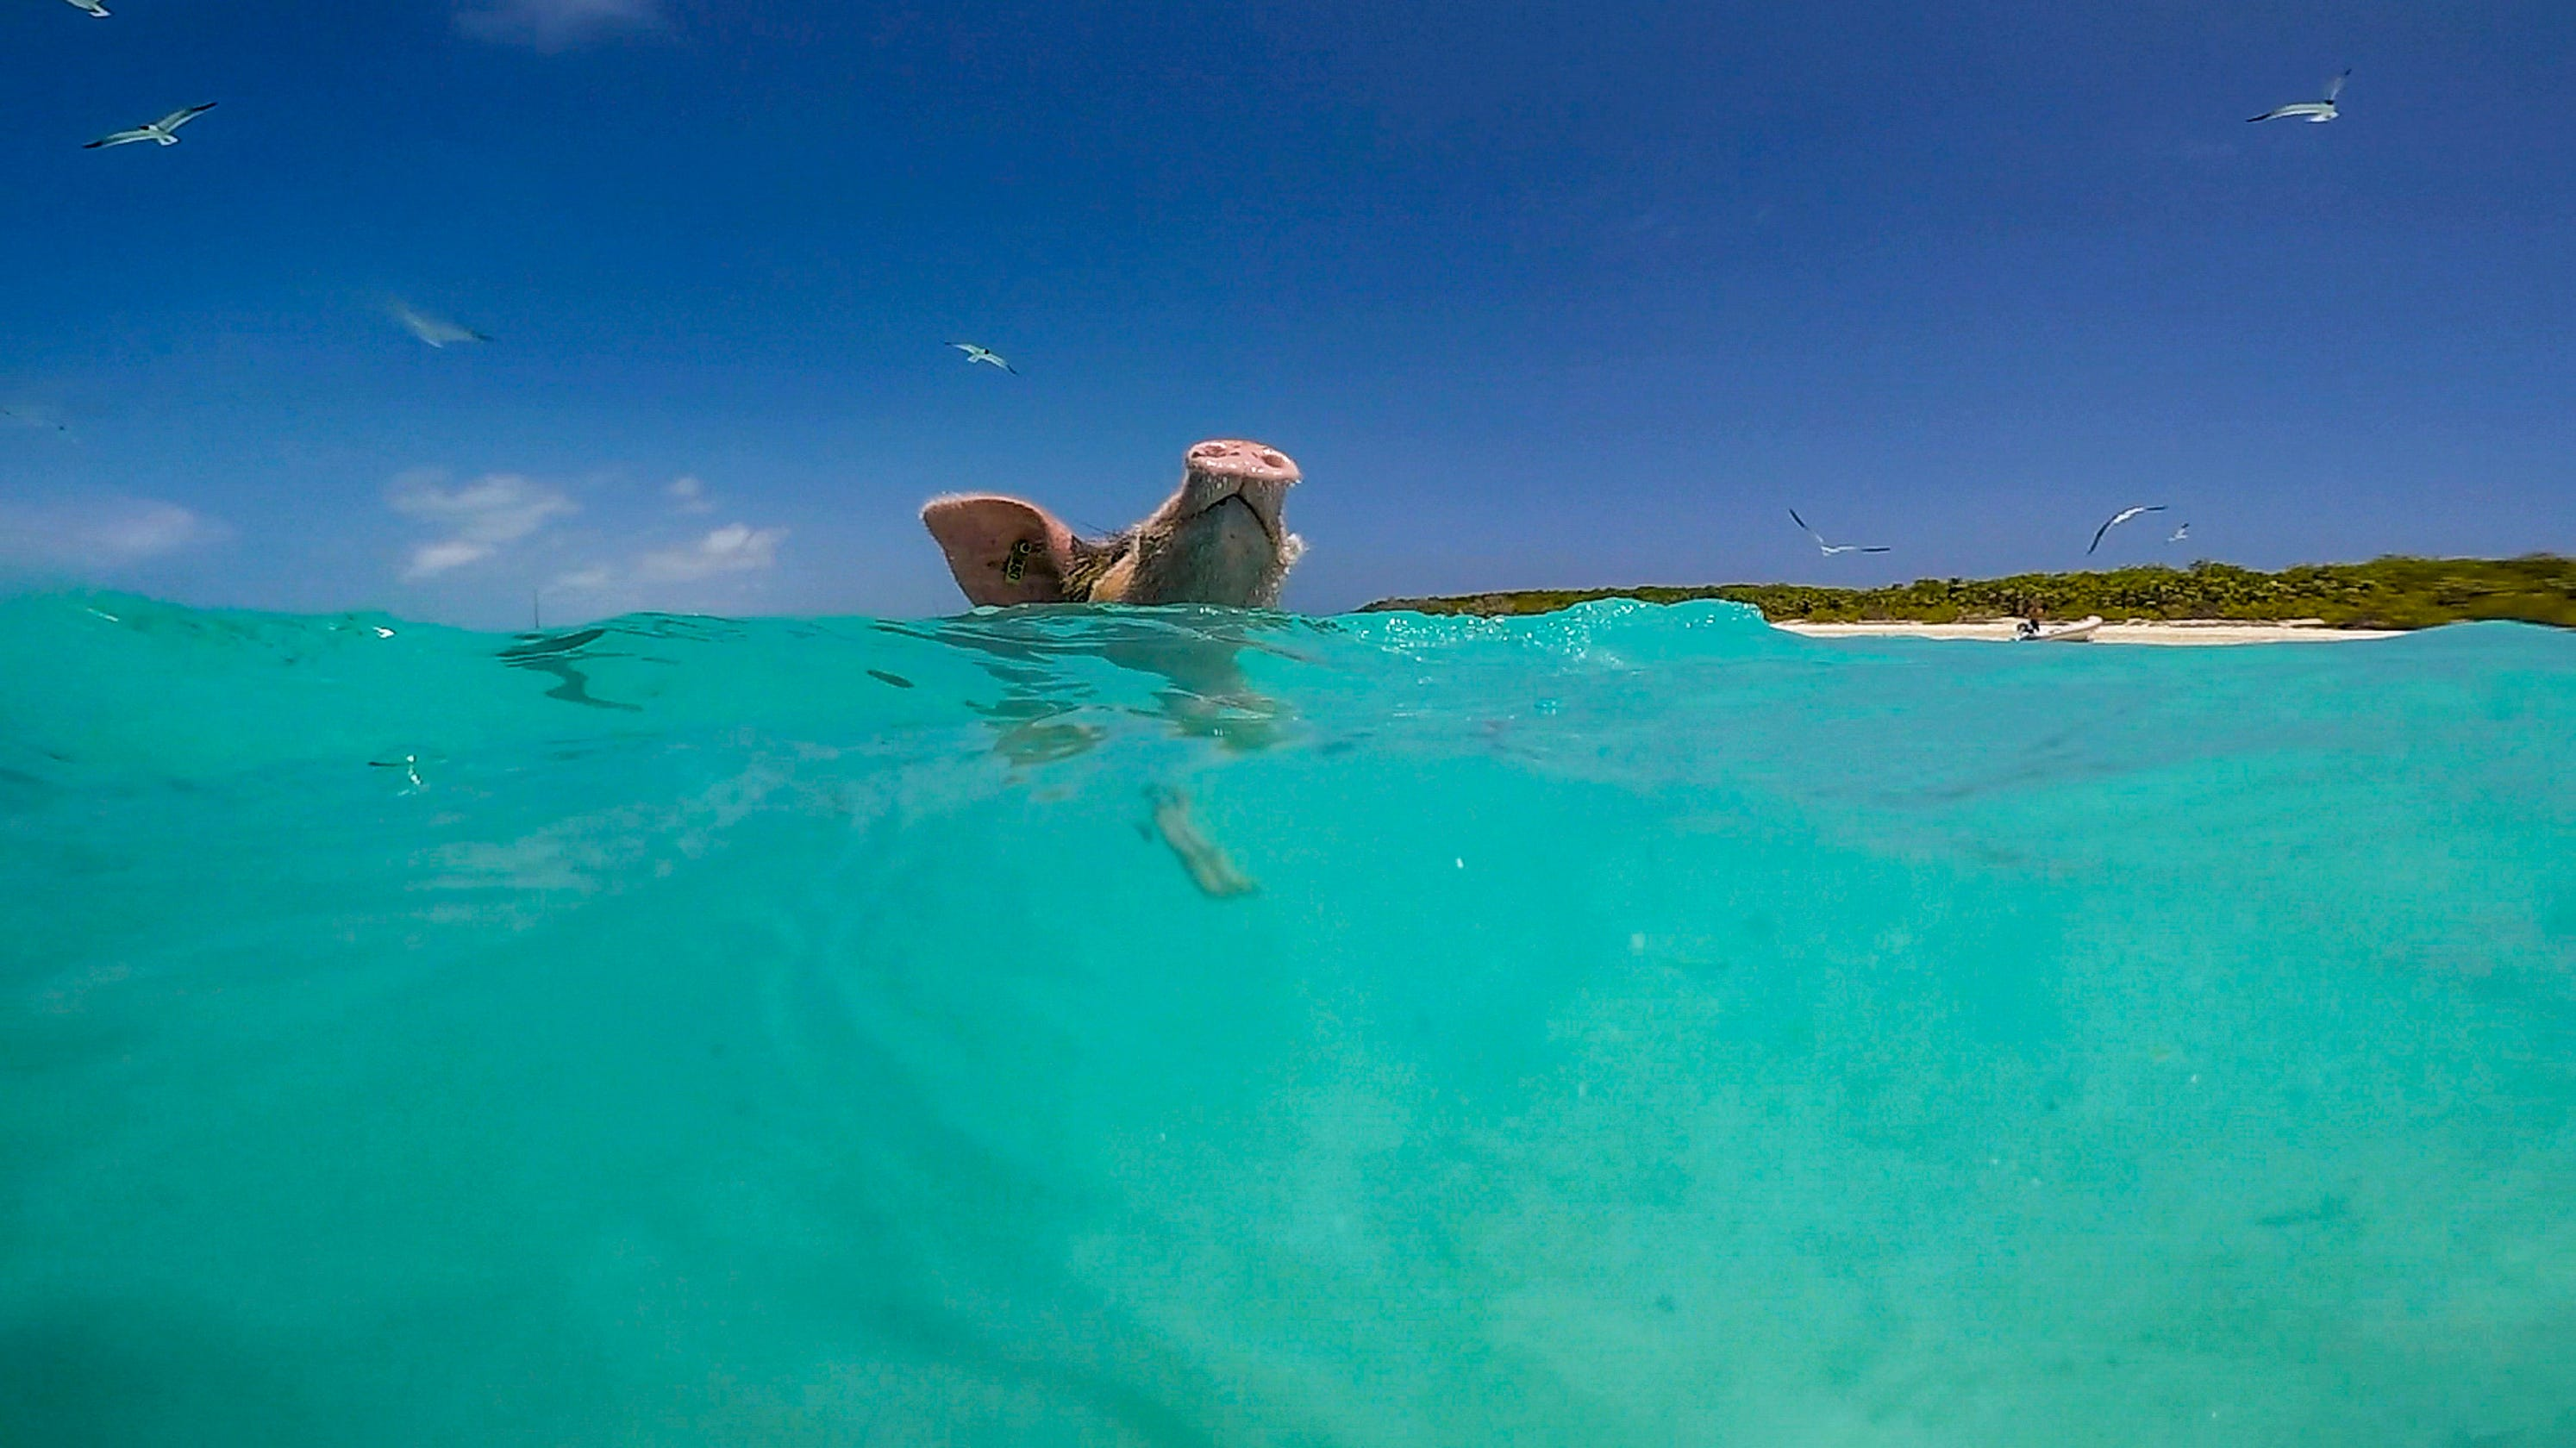 Swimming pigs, tranquil waters make Exuma in the Bahamas special